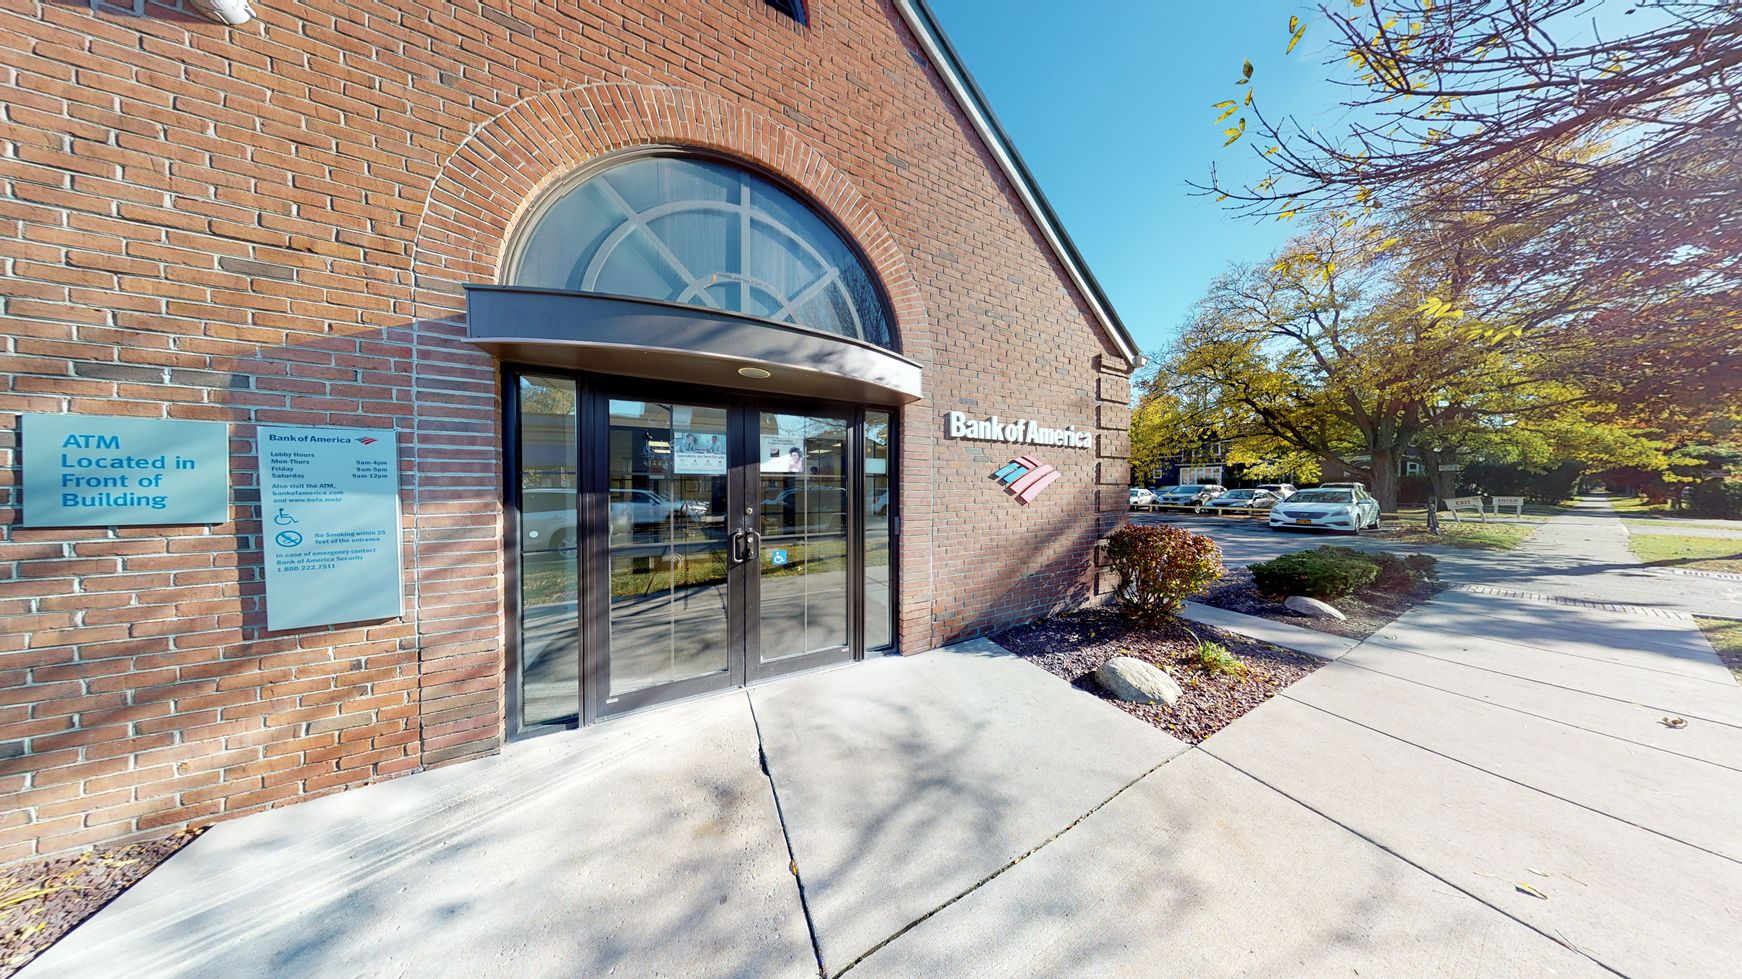 Bank of America financial center with walk-up ATM | 671 Park Ave, Rochester, NY 14607